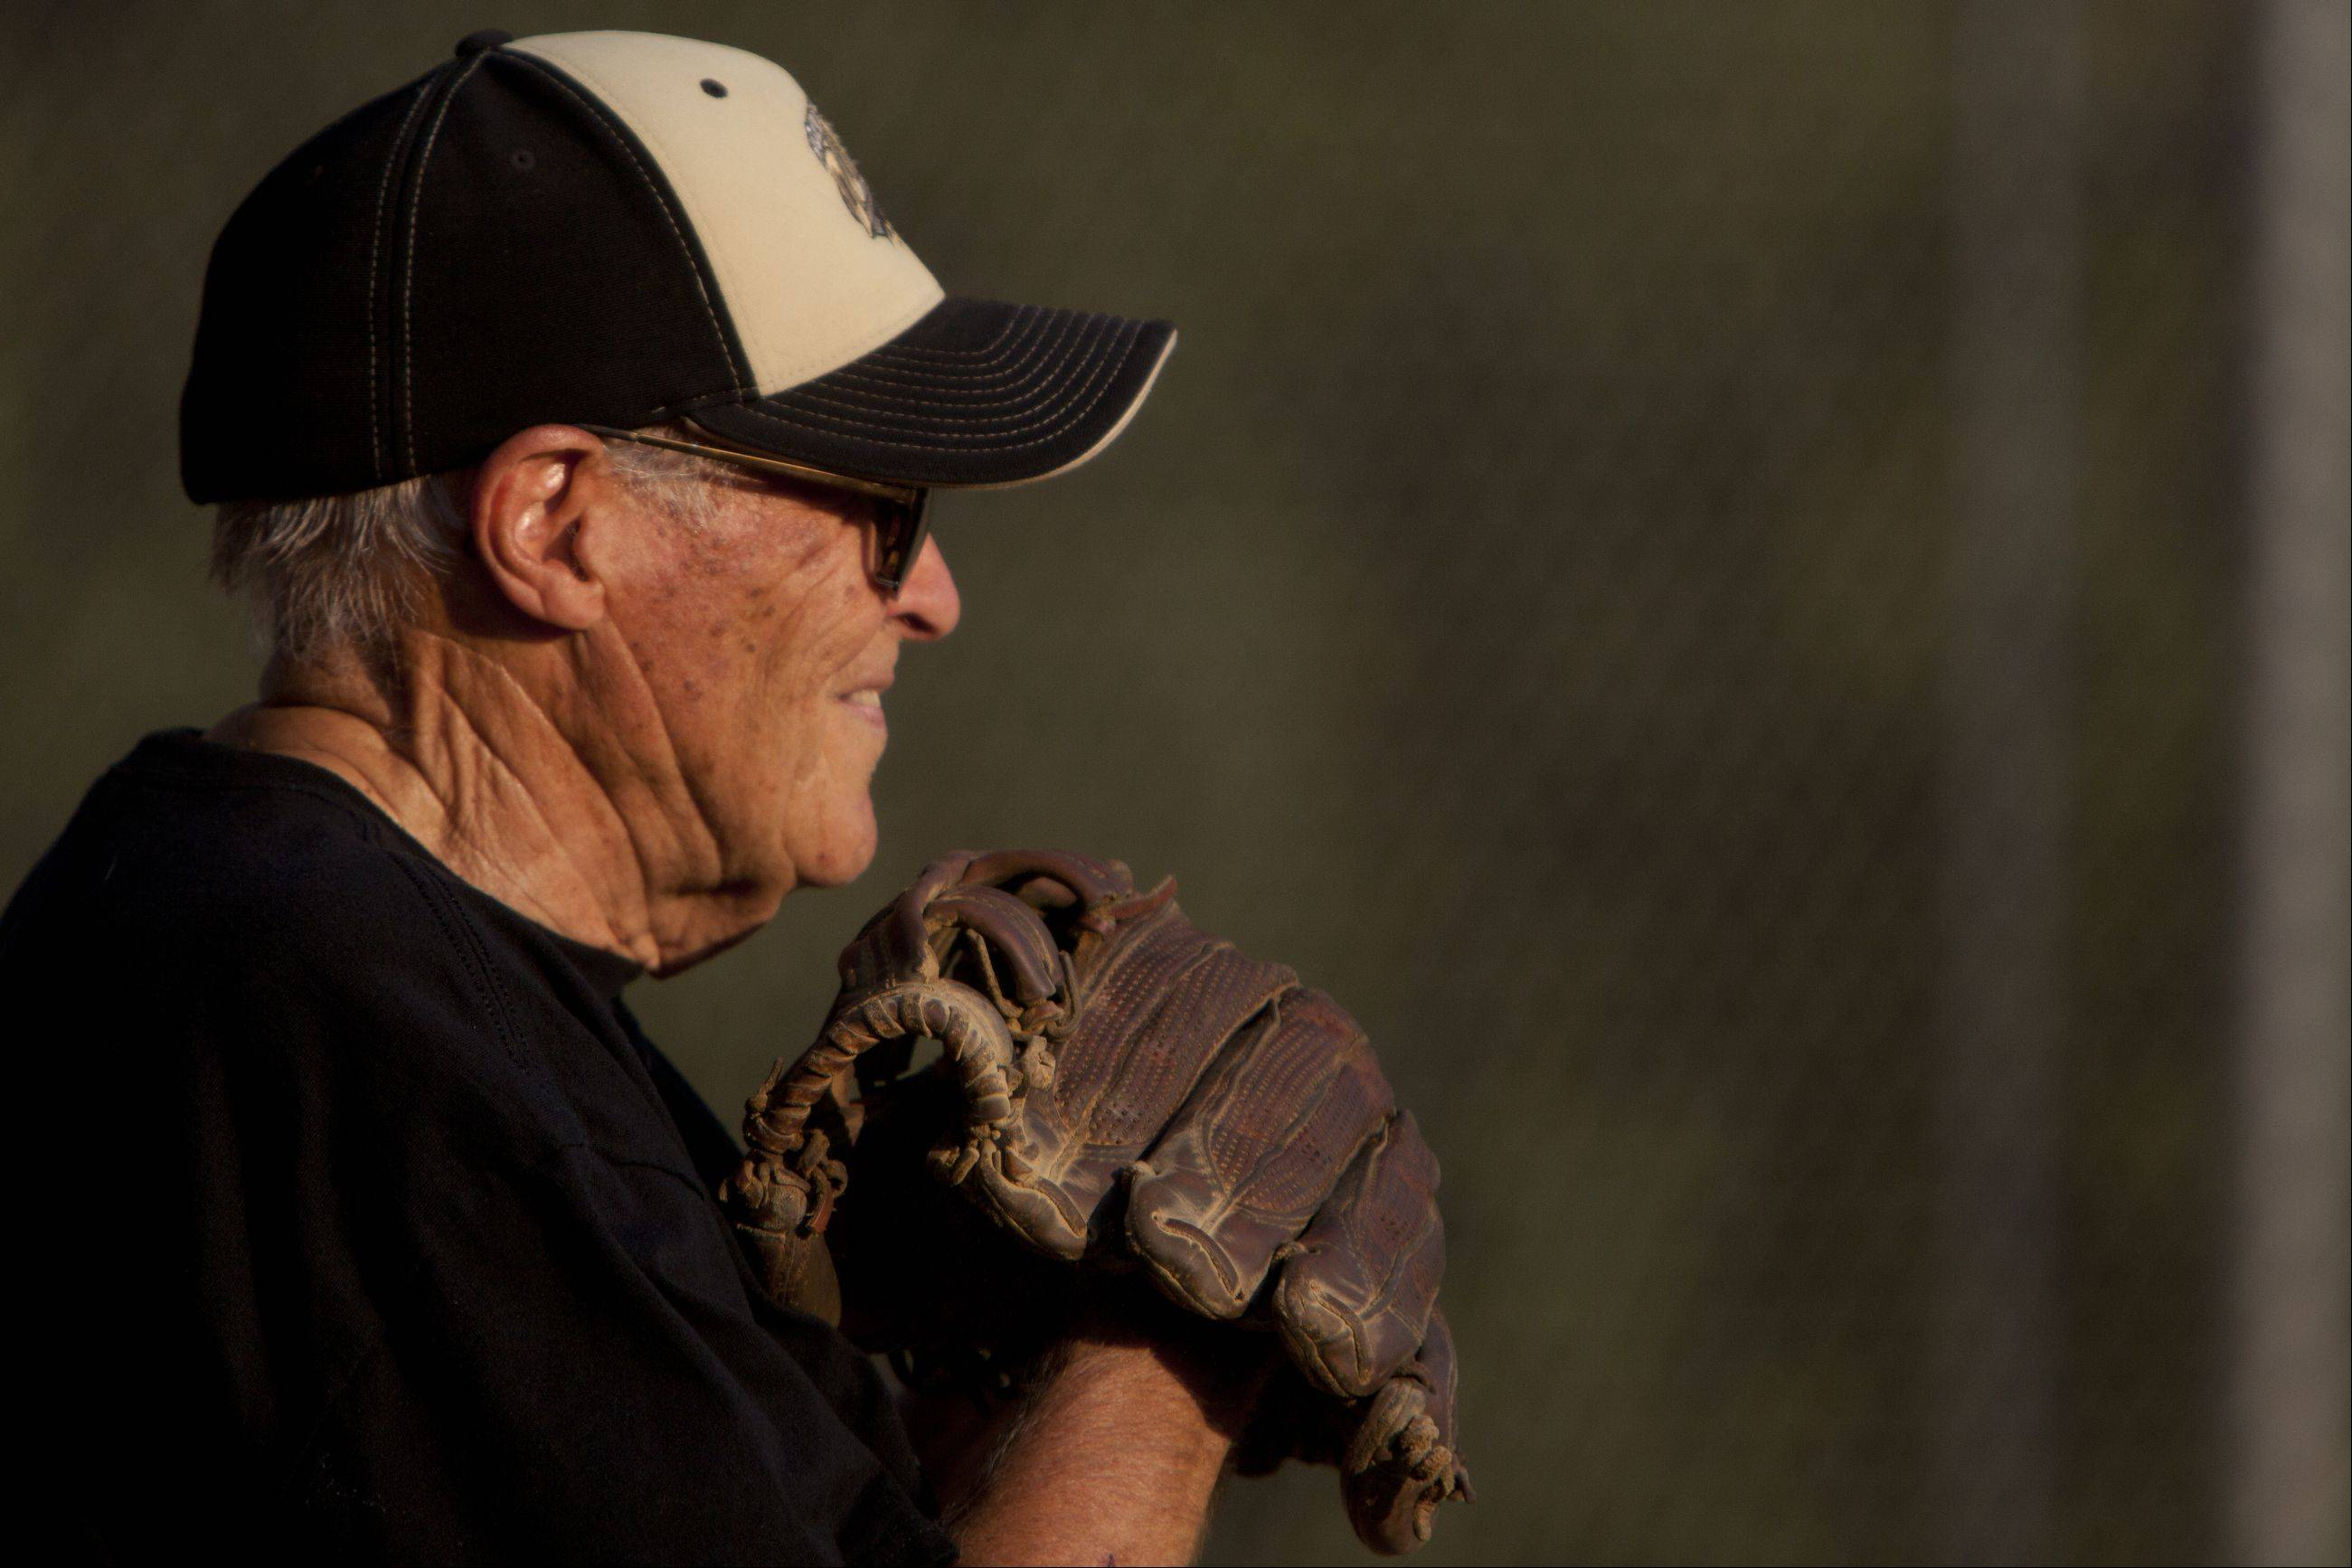 Ken Black, 82, the oldest member of the Chicagoland Legends Softball League gets ready for a pitch.